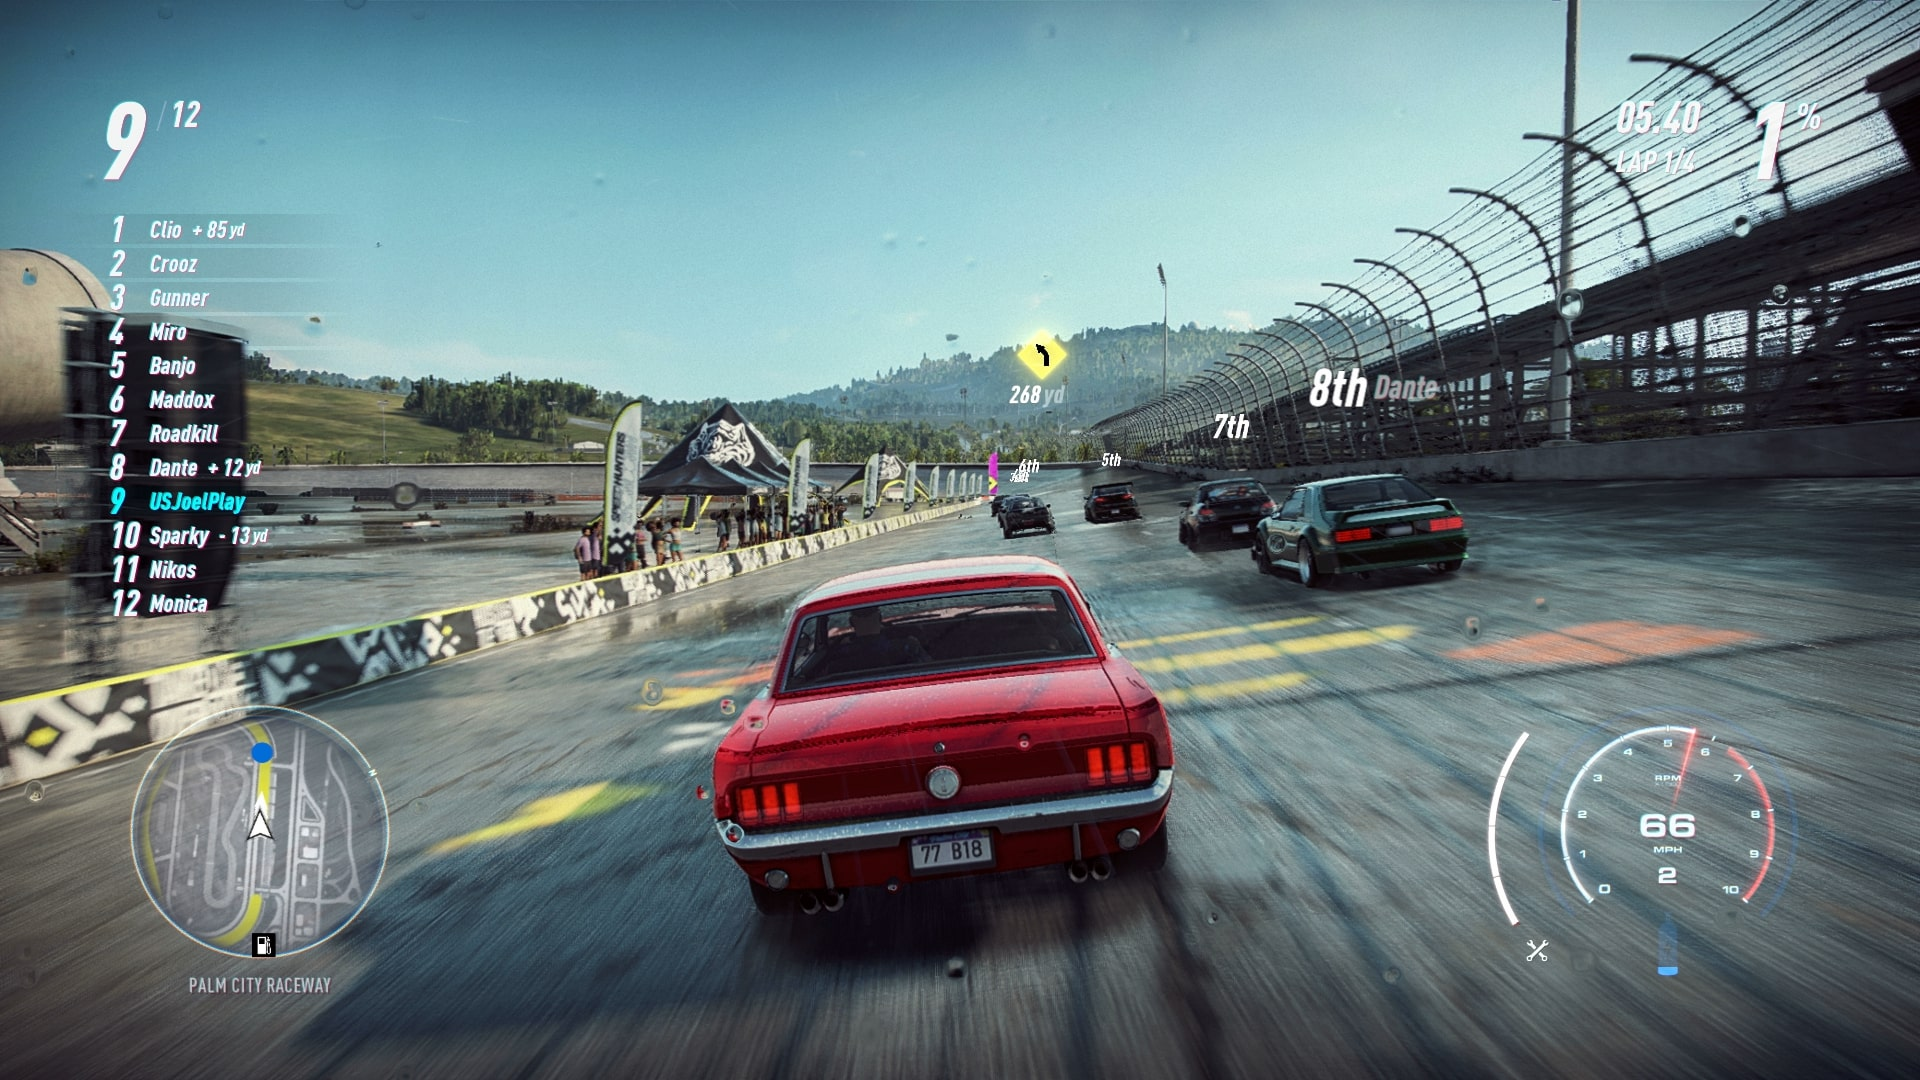 How To Make Money Fast In Need For Speed Heat Usgamer